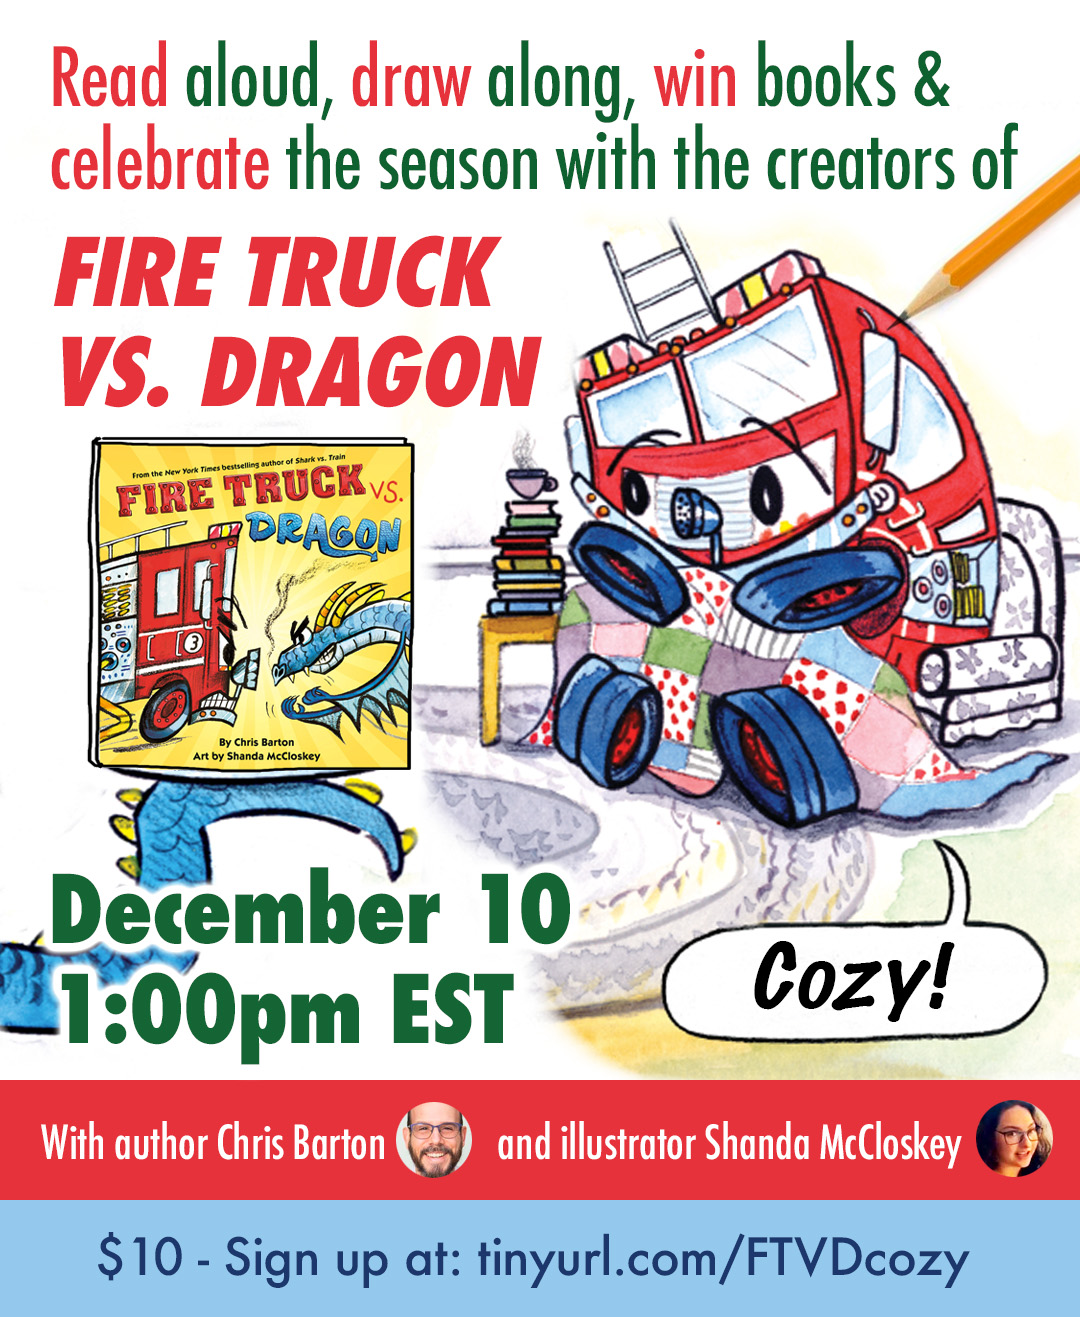 Join me live on December 10 with Fire Truck vs. Dragon illustrator Shanda McCloskey!